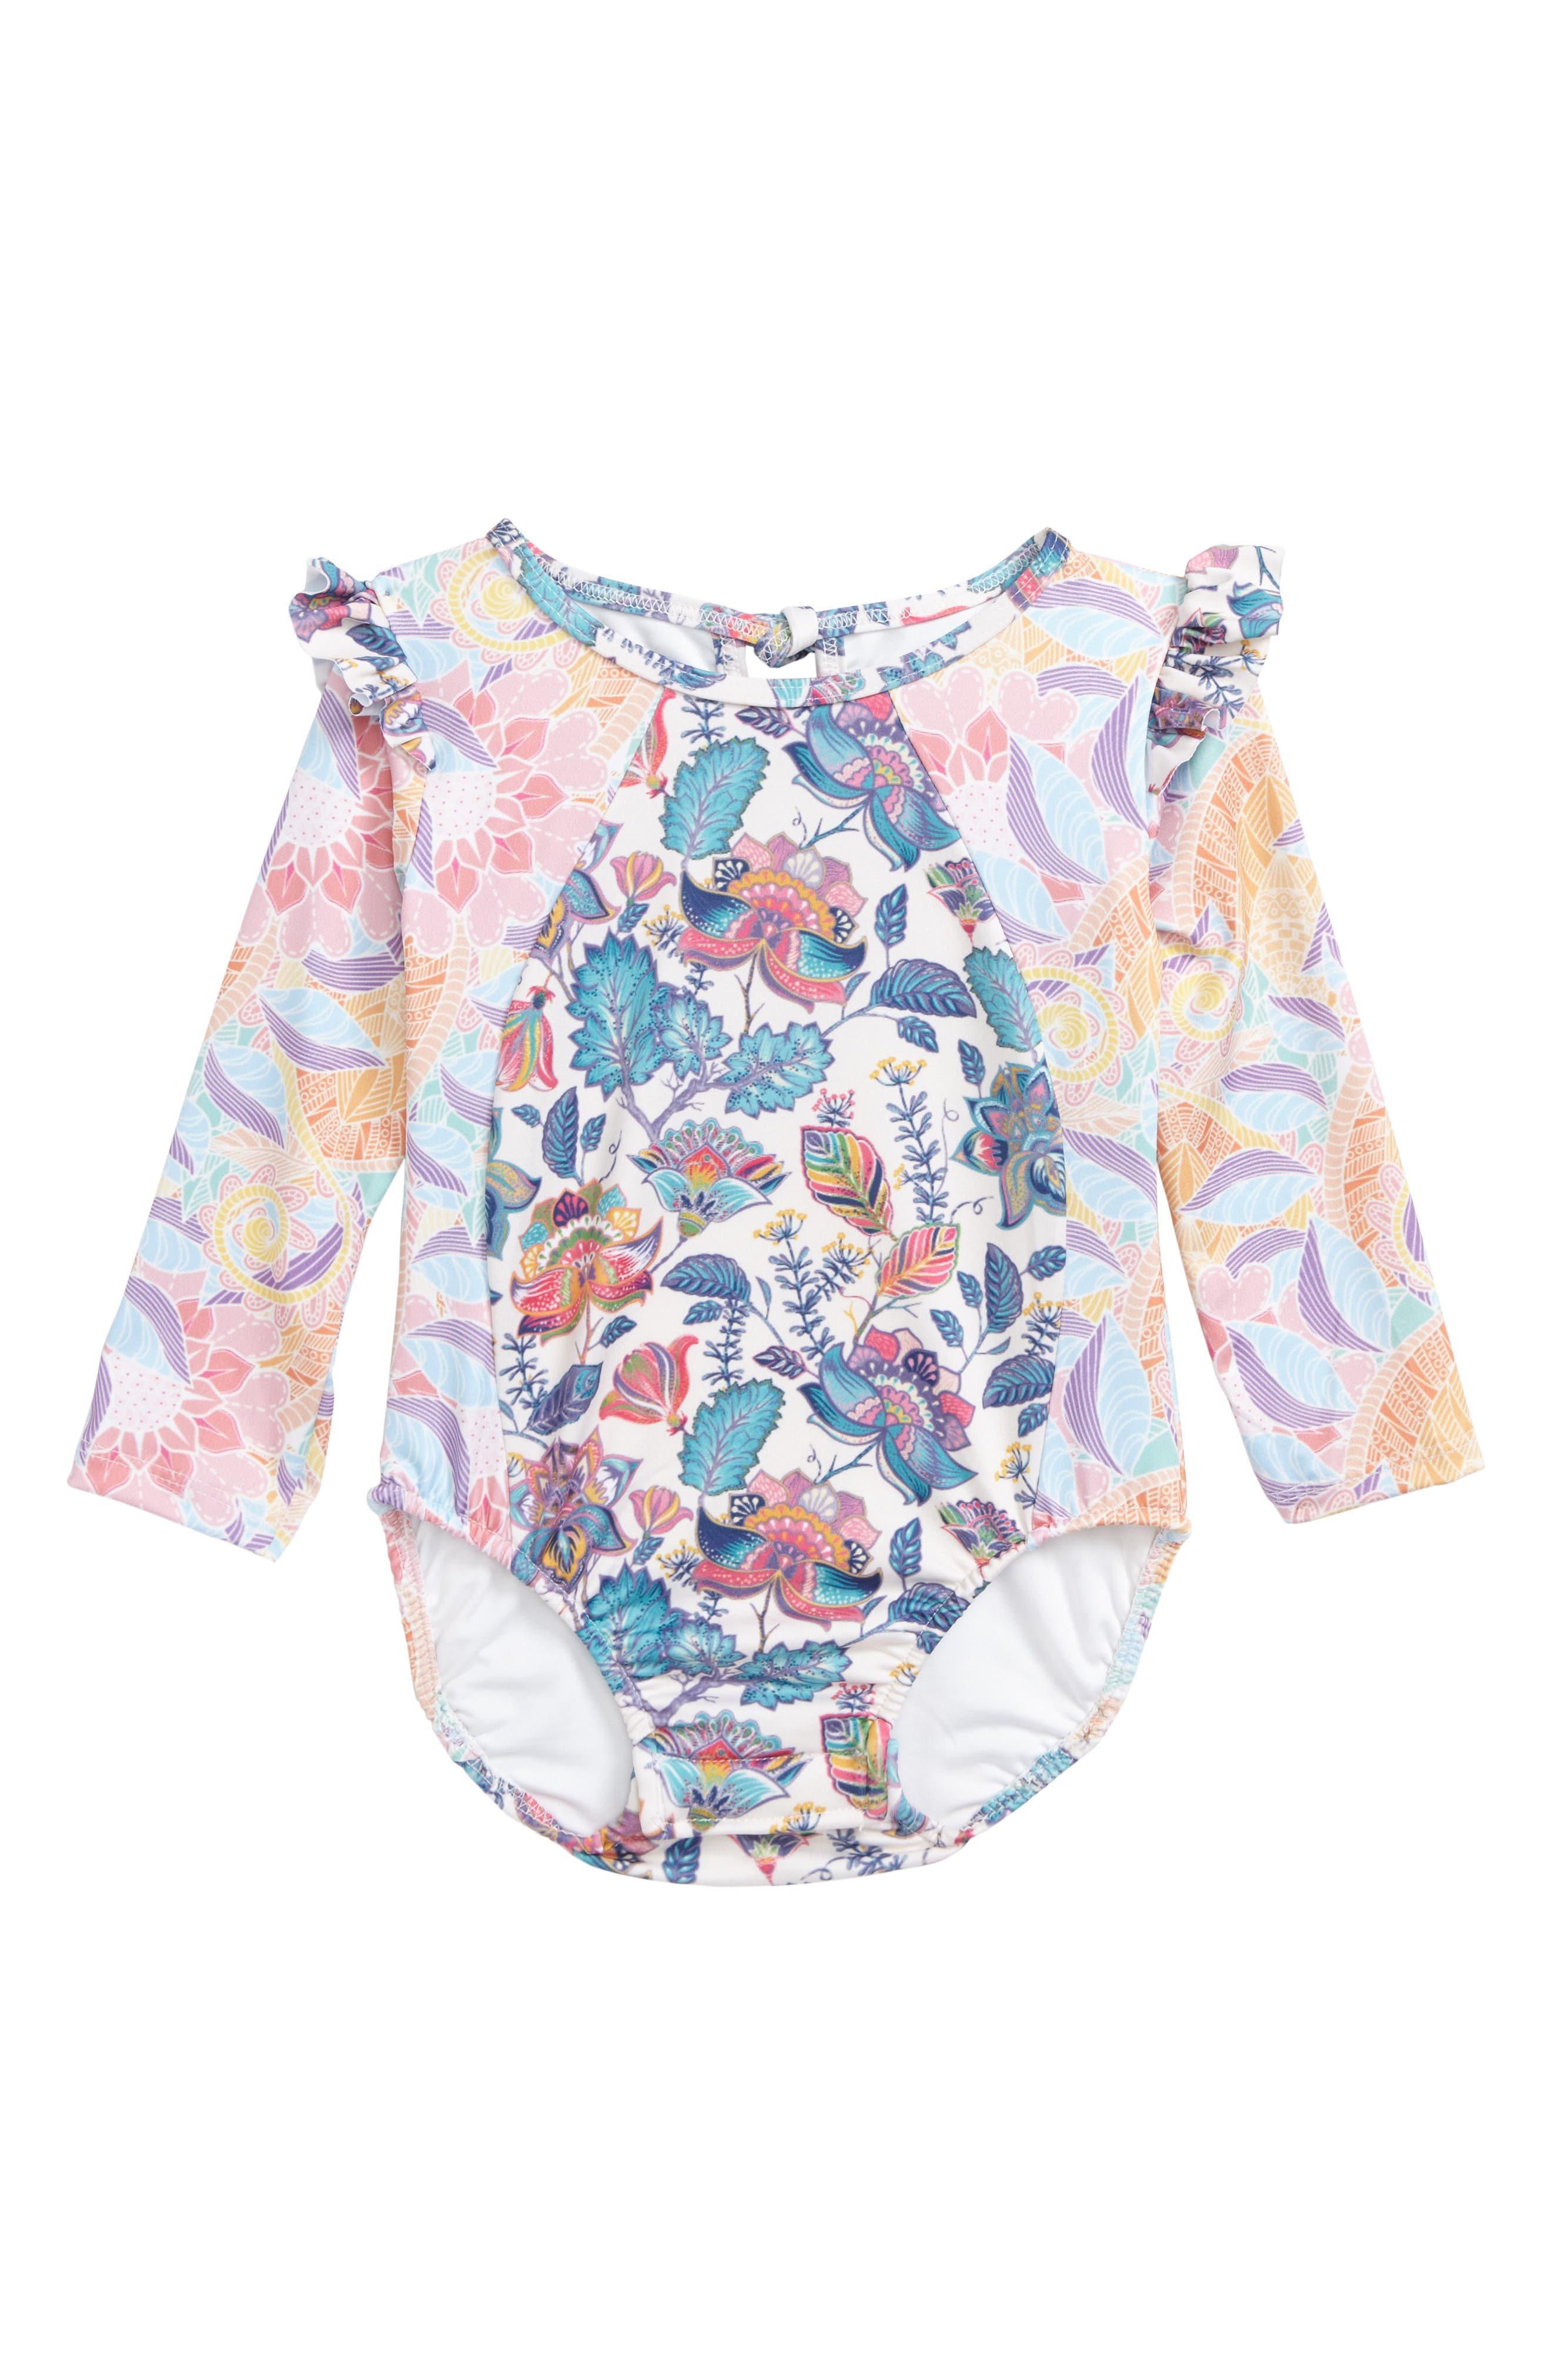 Alternate Image 1 Selected - The Salty Baby One-Piece Rashguard Swimsuit (Toddler Girls)